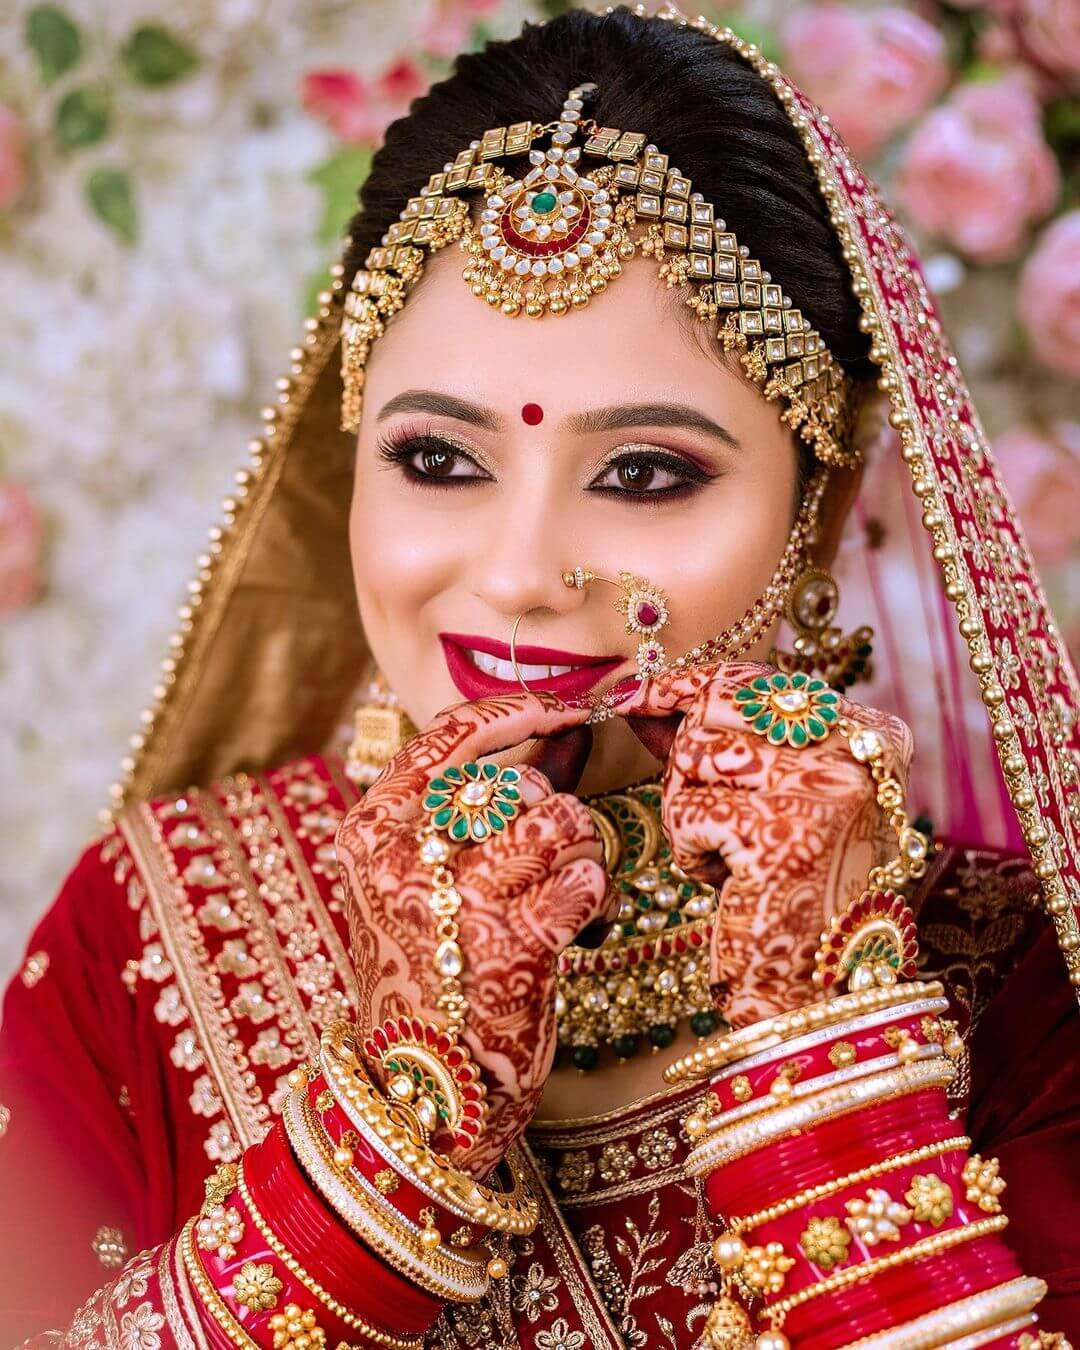 Red lehenga with gold embellishments bridal Look